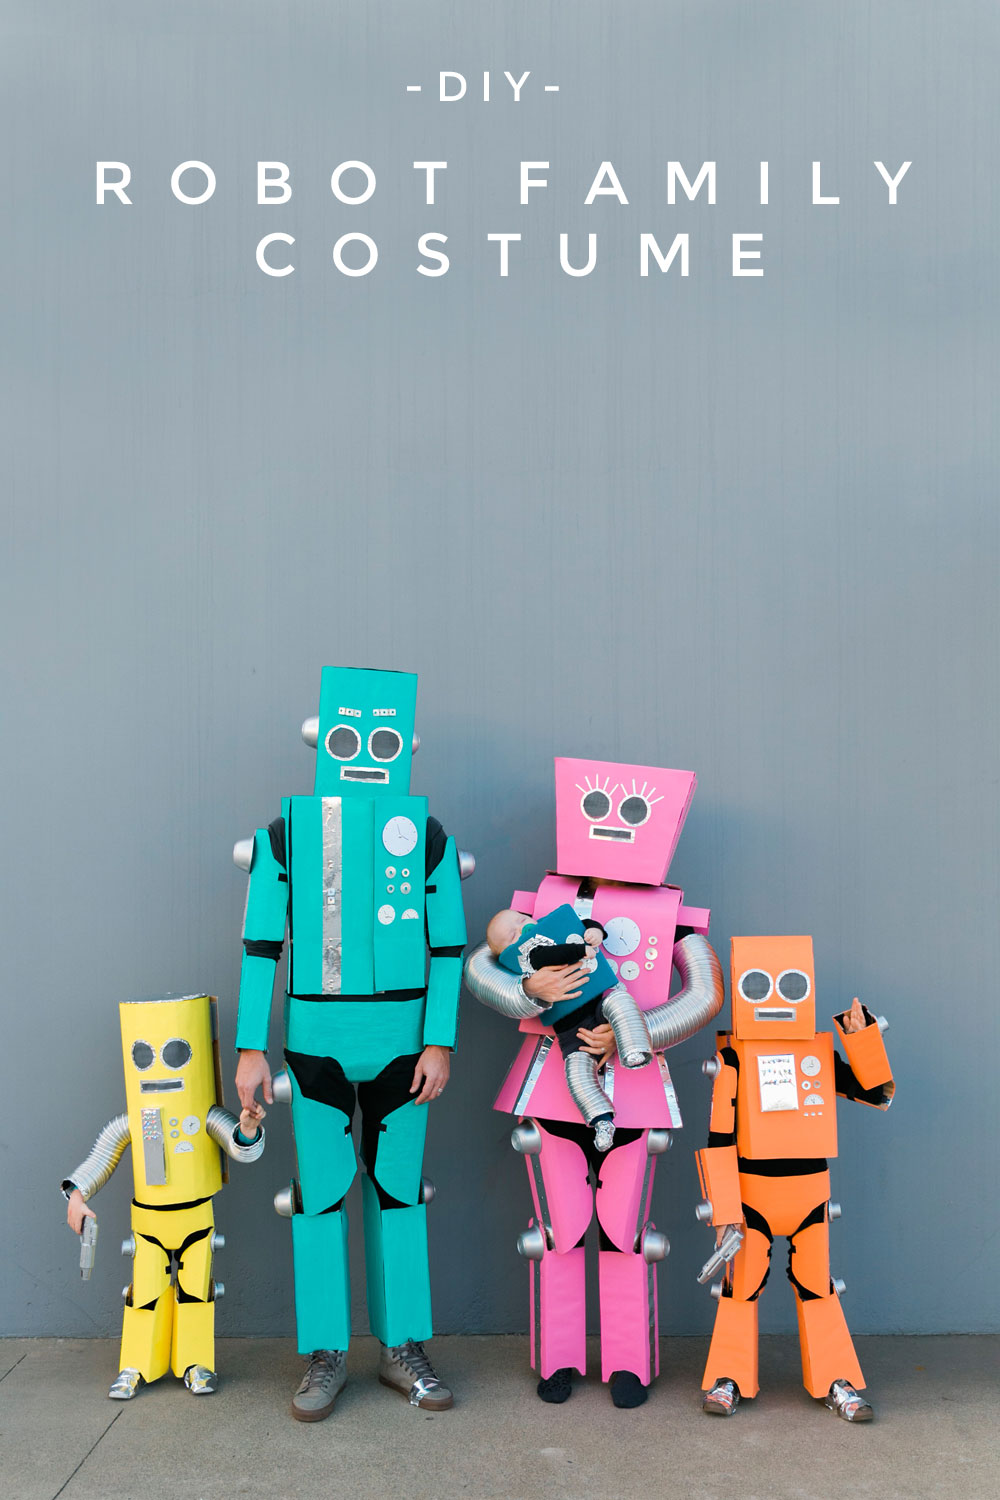 Robot-Family-costume-DIY.jpg